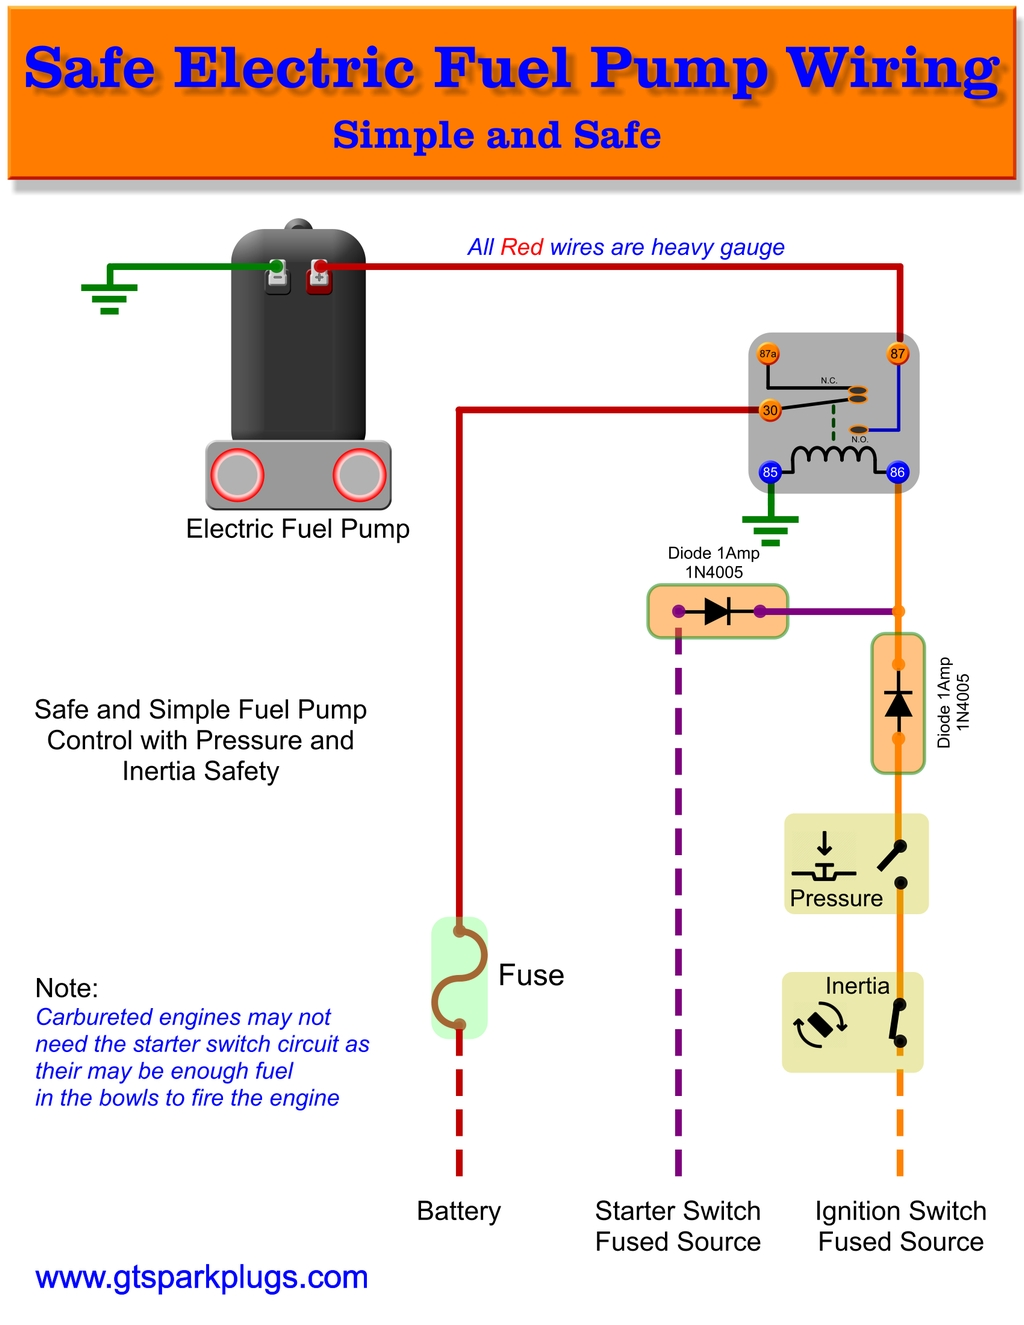 electric fuel pump wiring diagram gtsparkplugs fuel pump wiring backwards  basic safe electric fuel pump wiring